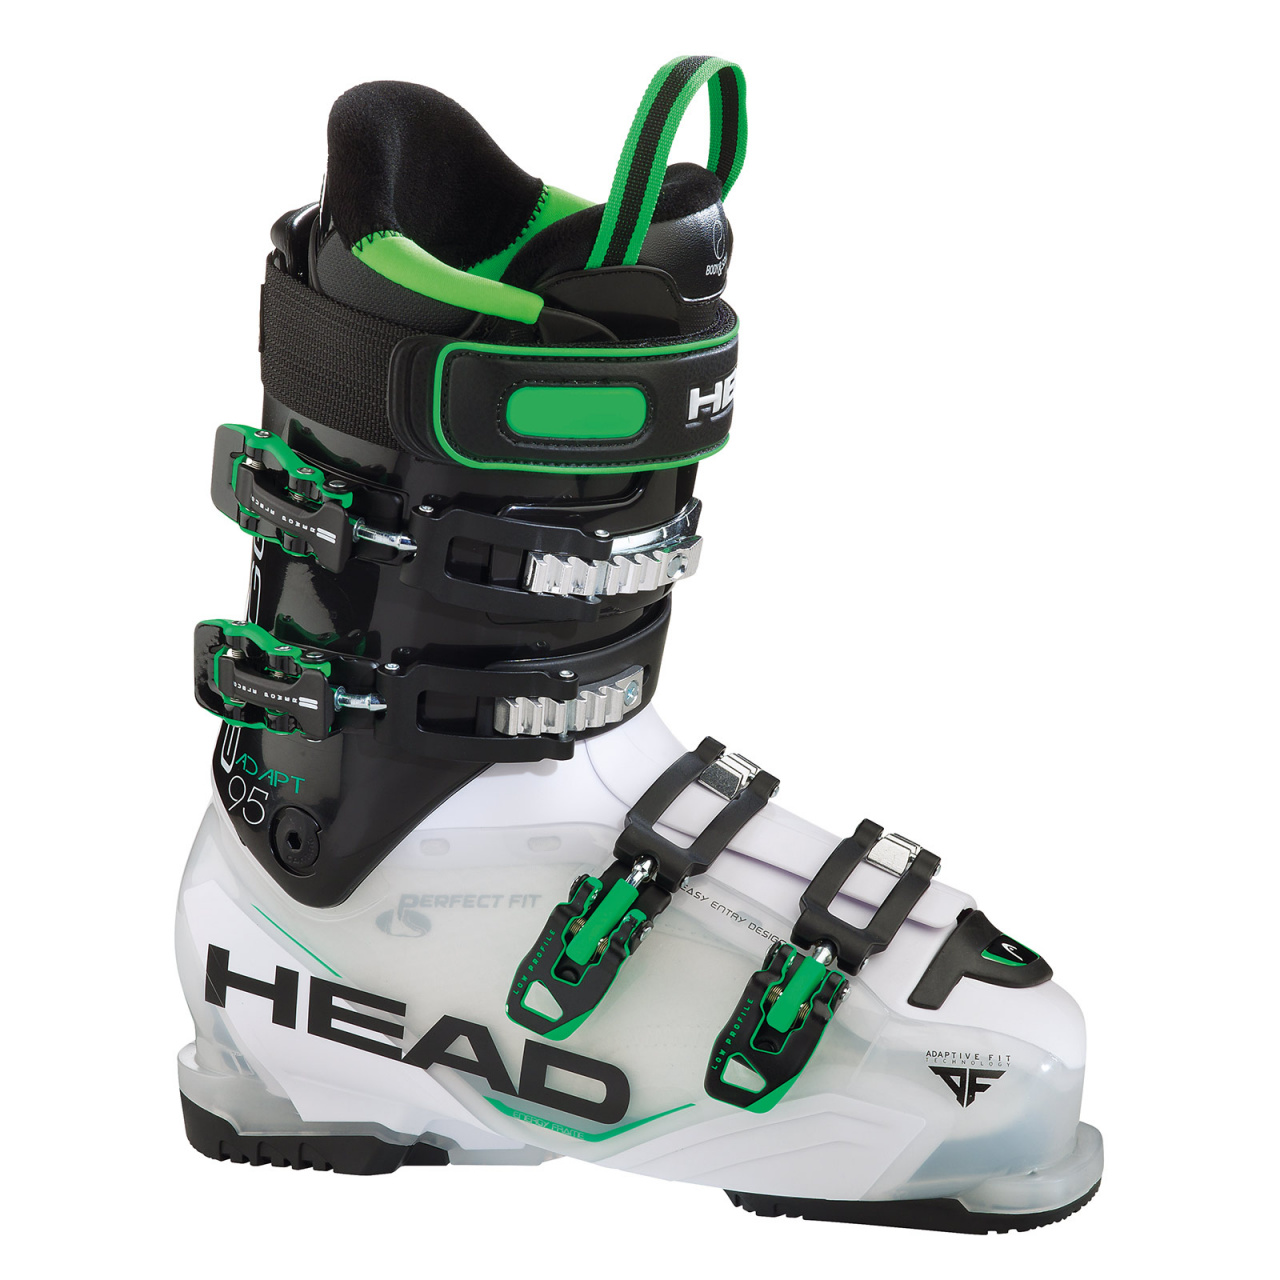 Head Adapt Edge 95 2016